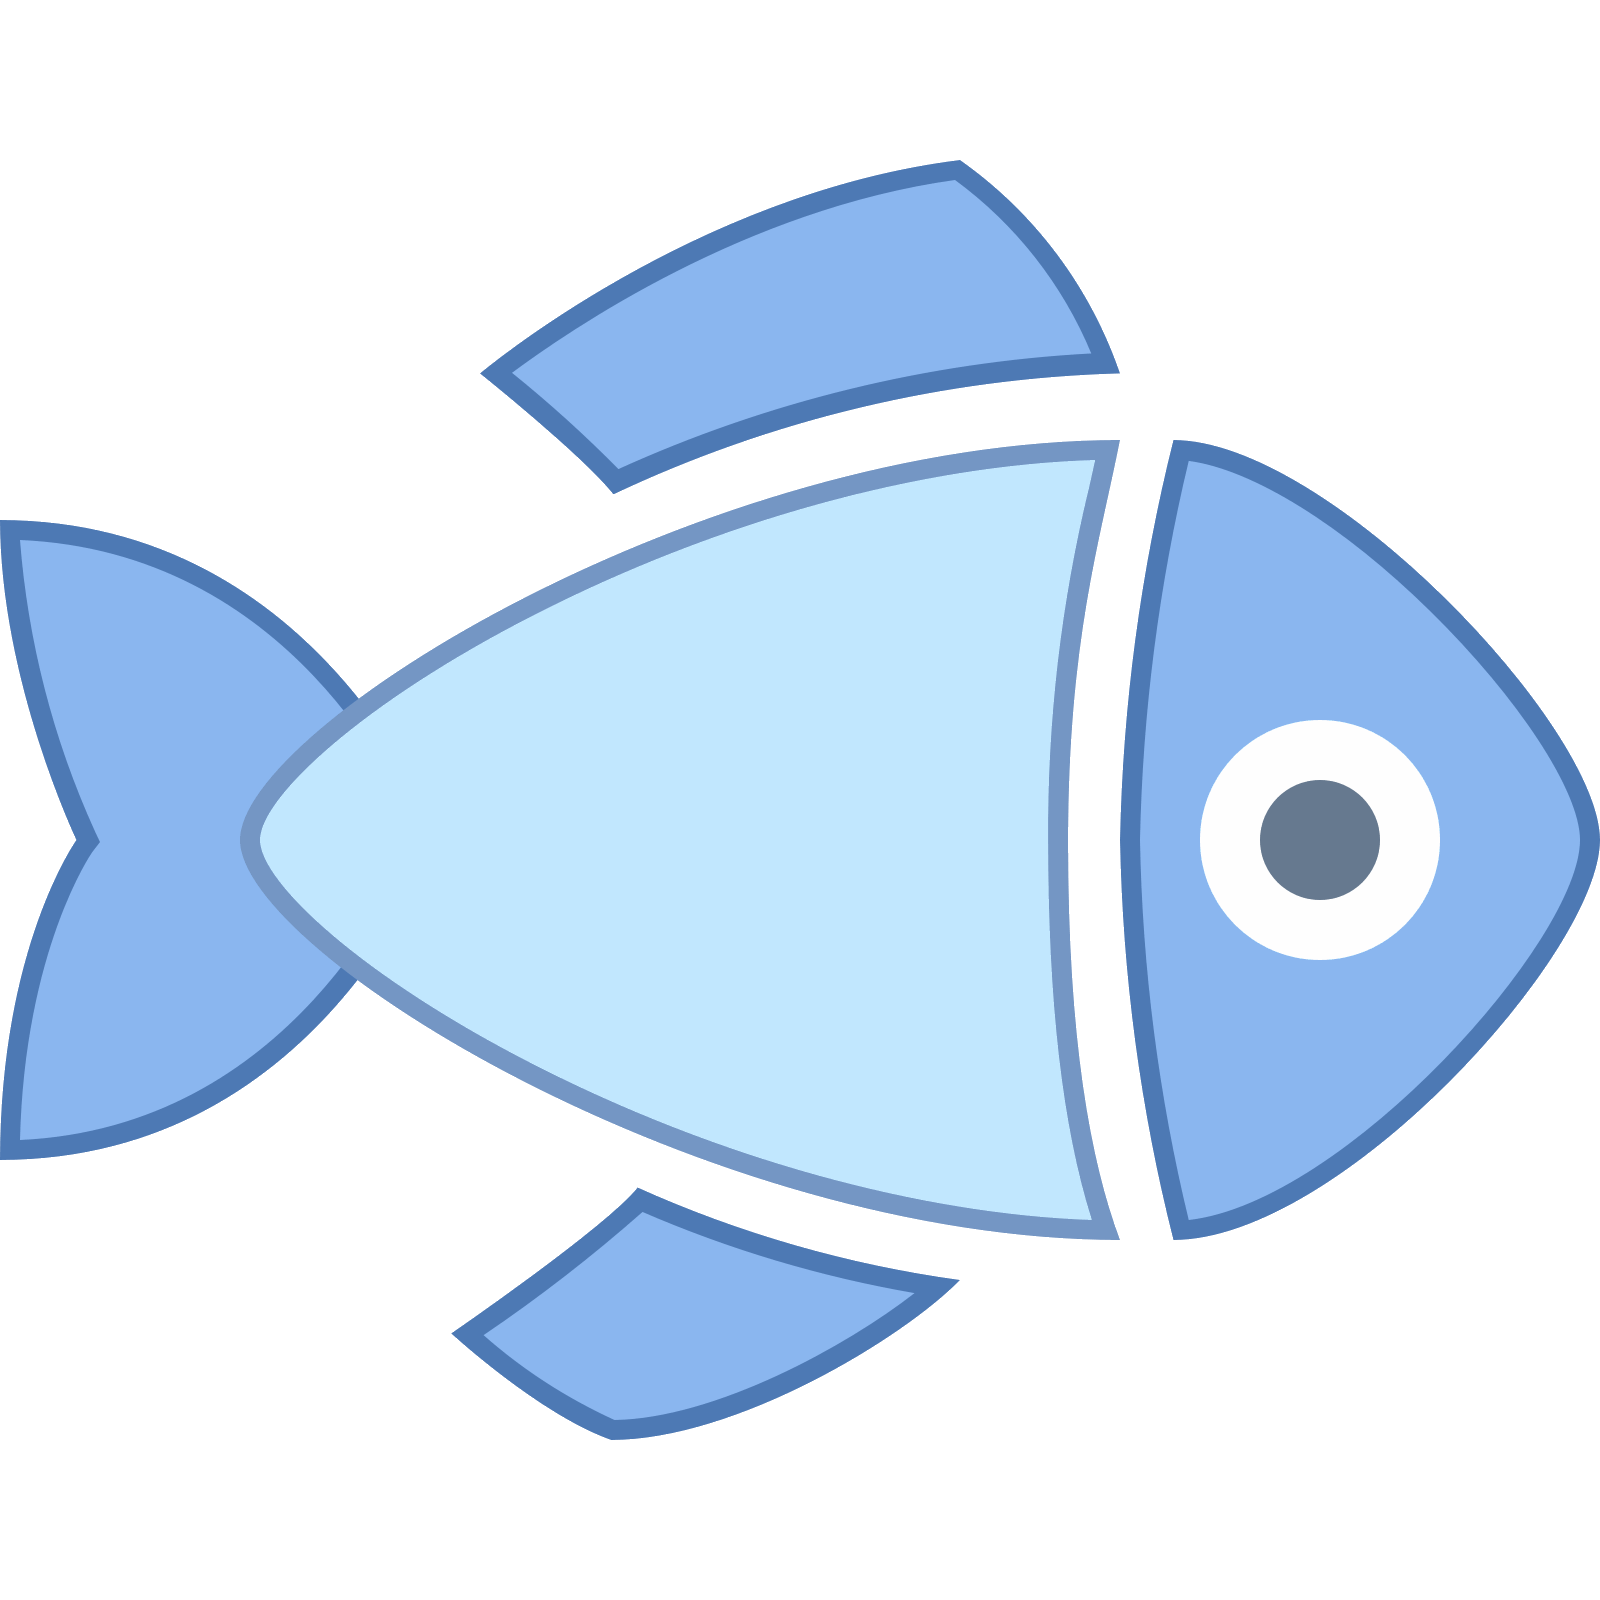 Fish vector png. Dressed icon free download